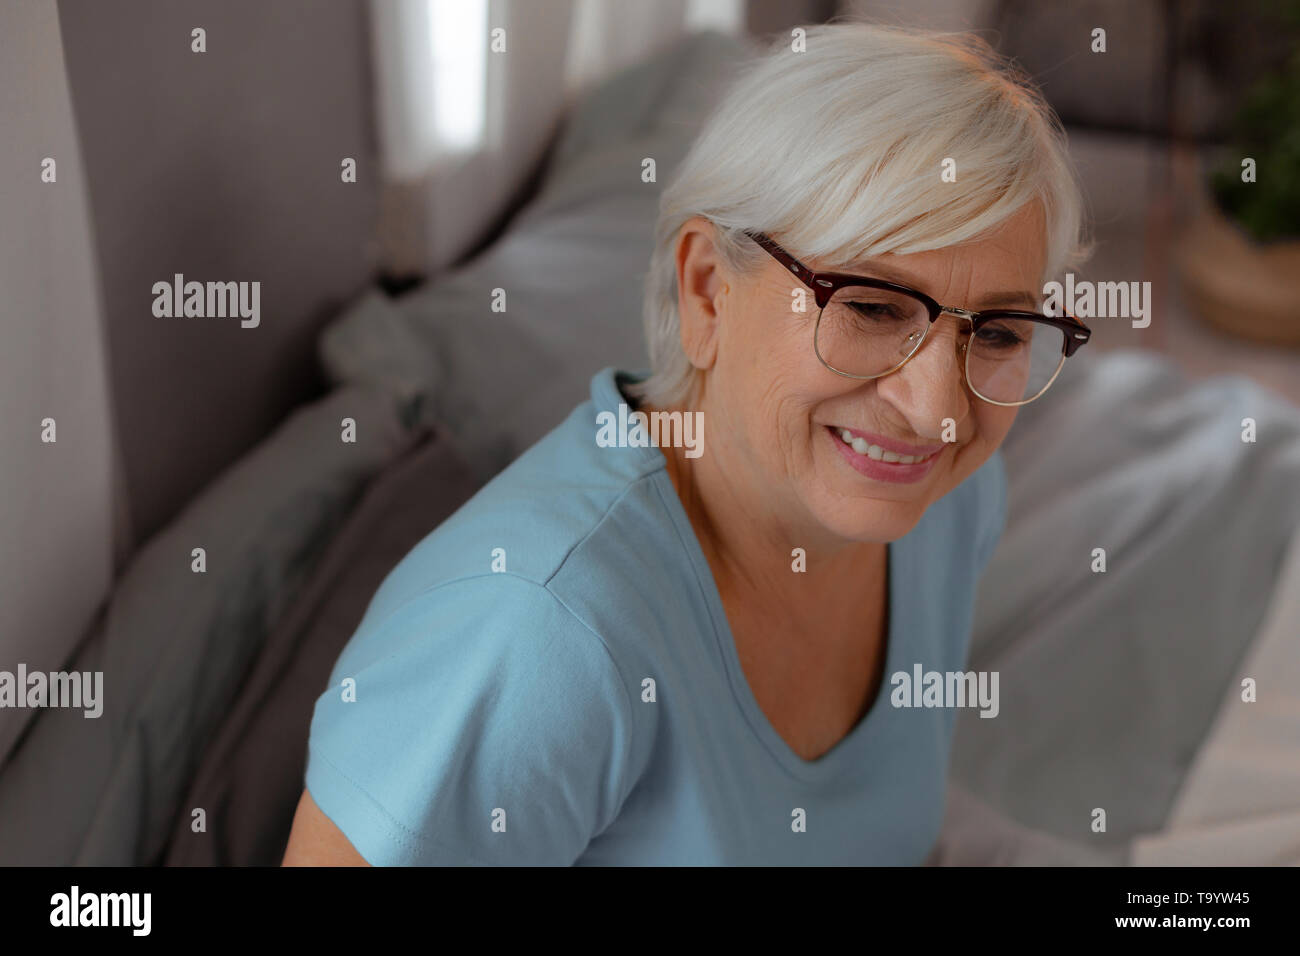 Face-portrait of wrinkled woman wearing eyeglasses and light-blue t-shirt - Stock Image